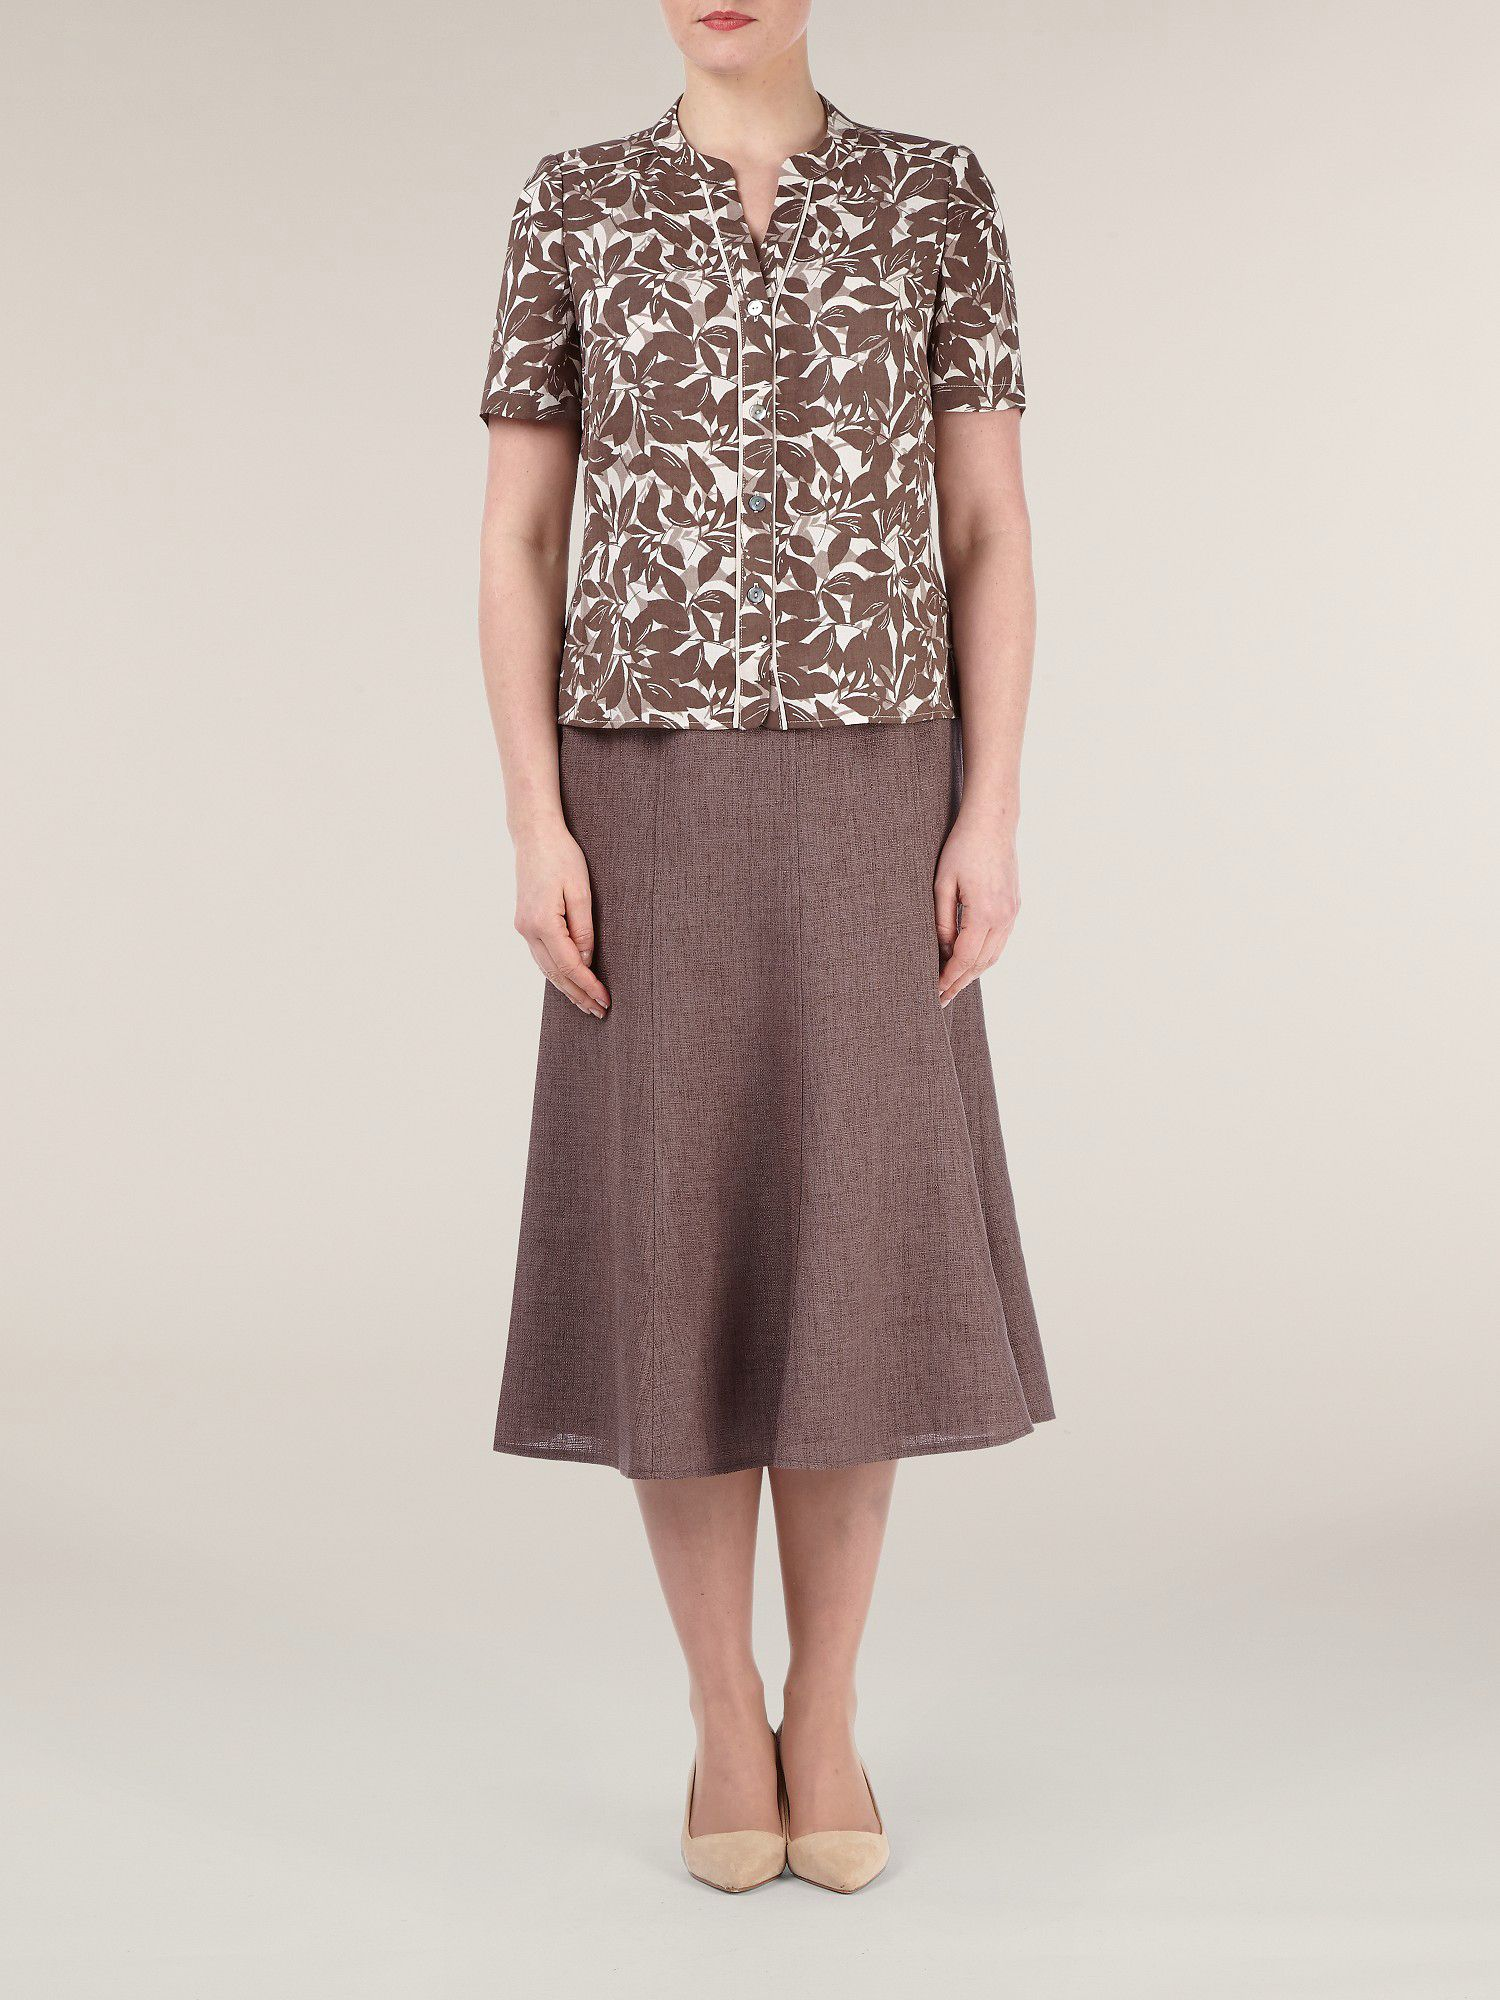 Basket weave fit & flare skirt